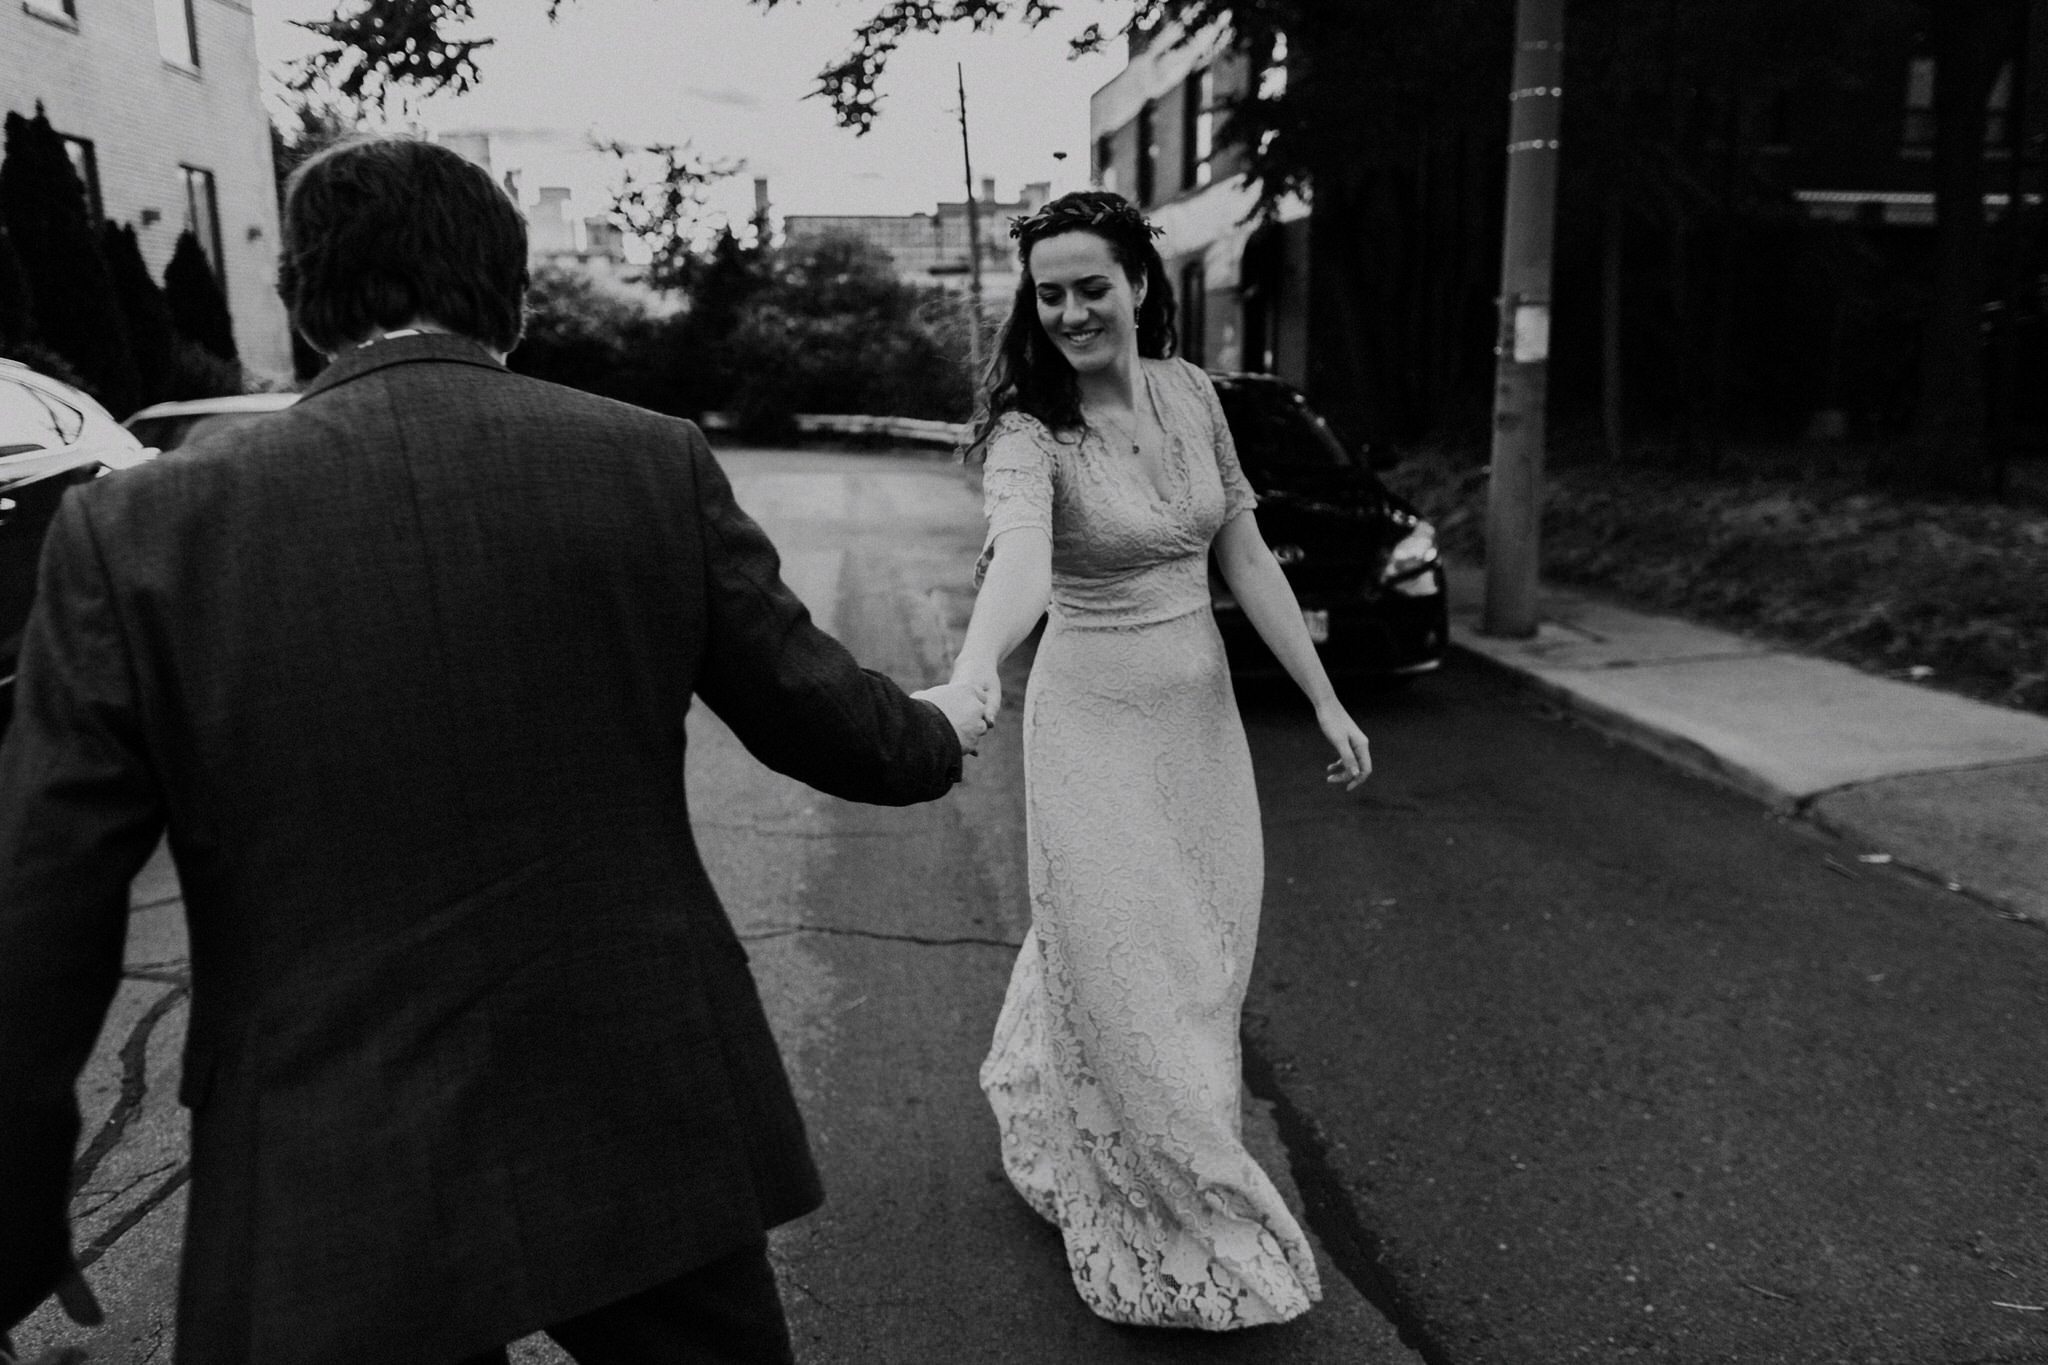 Merchants of Green Coffee Wedding - dancing on the street